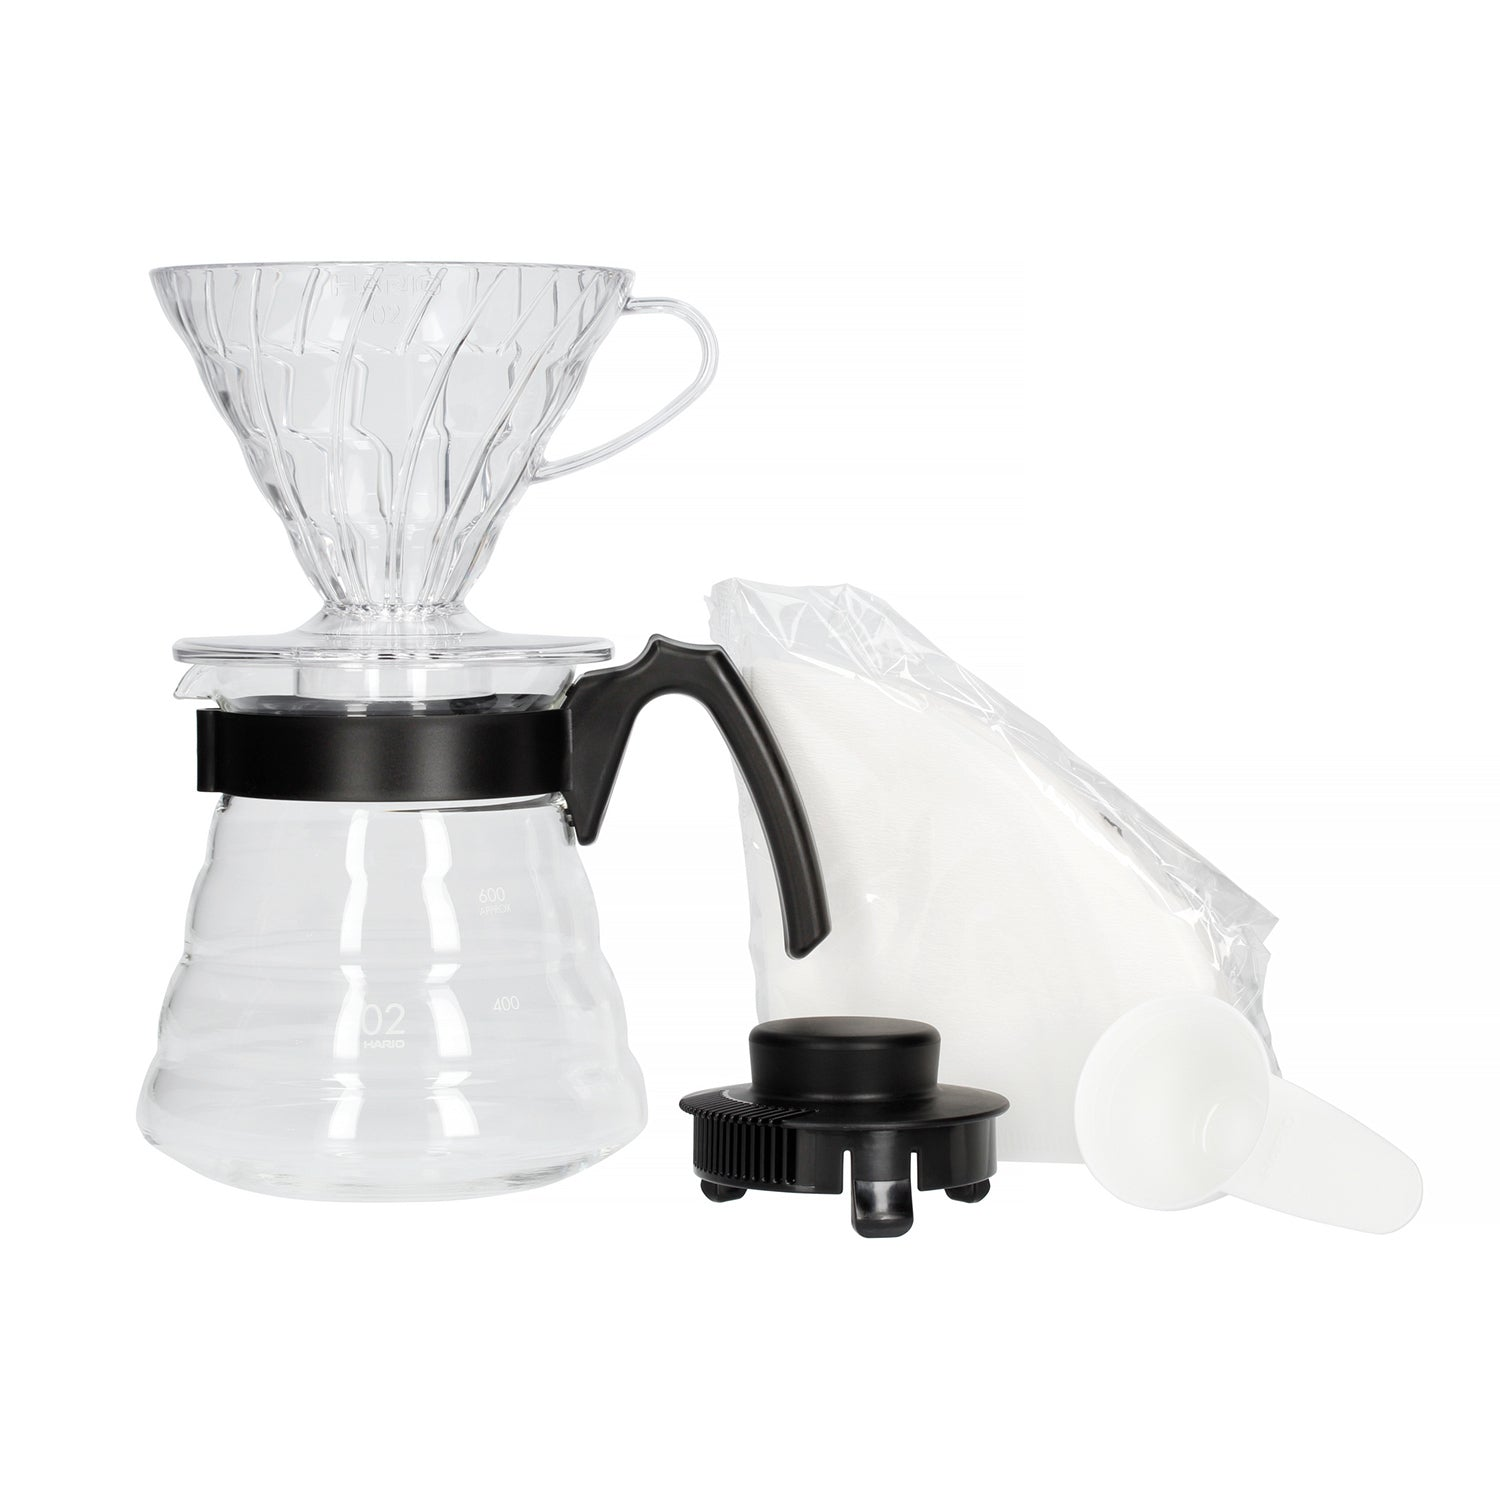 Hario V60 Coffee Maker Set - Dripper + Server + Filters